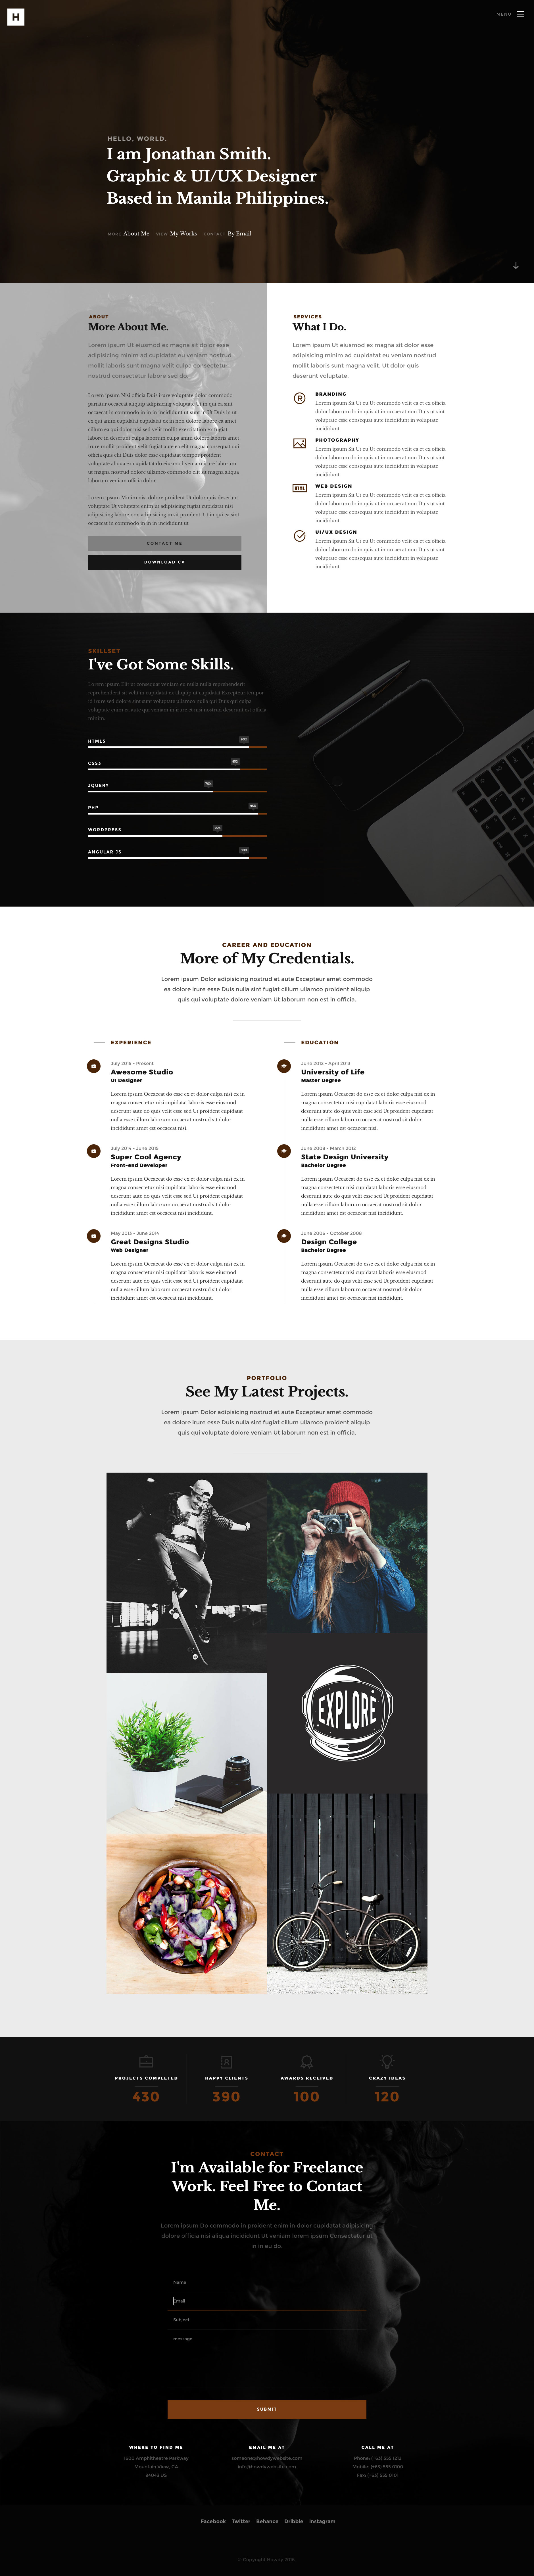 Howdy is a modern and free responsive HTML5 Portfolio website template created for designers and freelancers. It is the ideal choice to showcasing your work. Howdy is built on the latest HTML5 and CSS3.